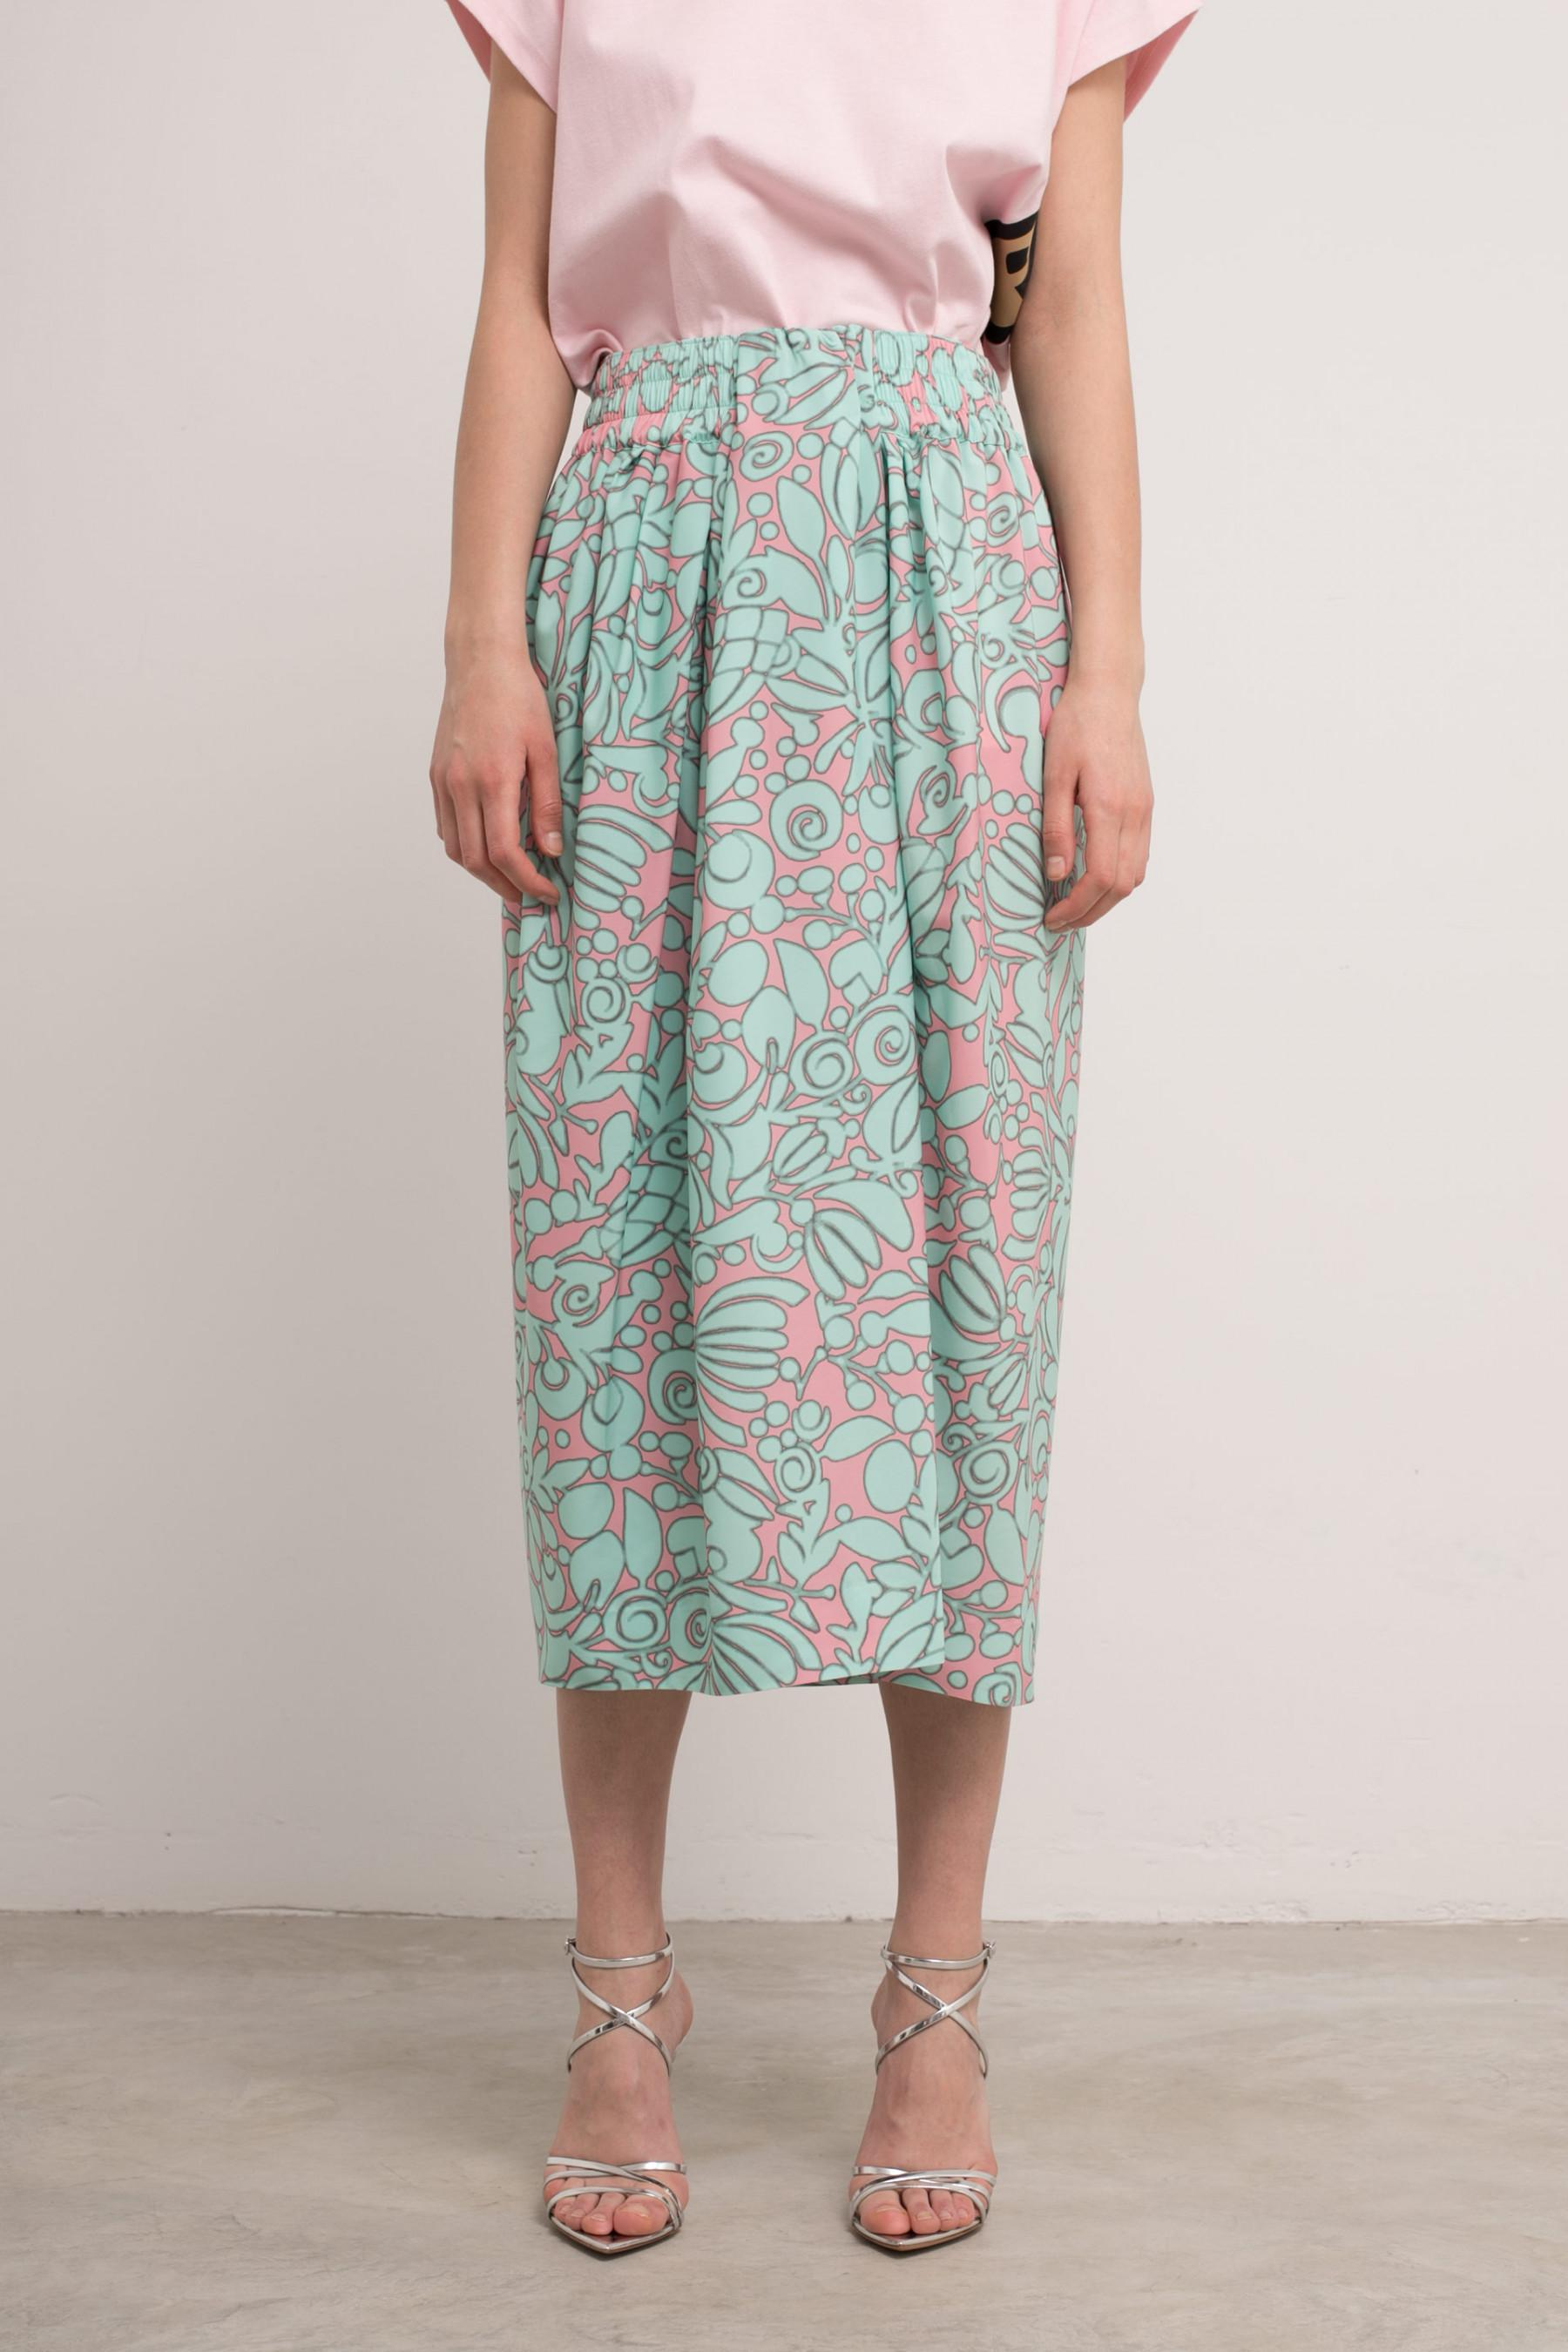 63cb5242e8 Marc Jacobs Floral Draped Skirt in Pink - Lyst